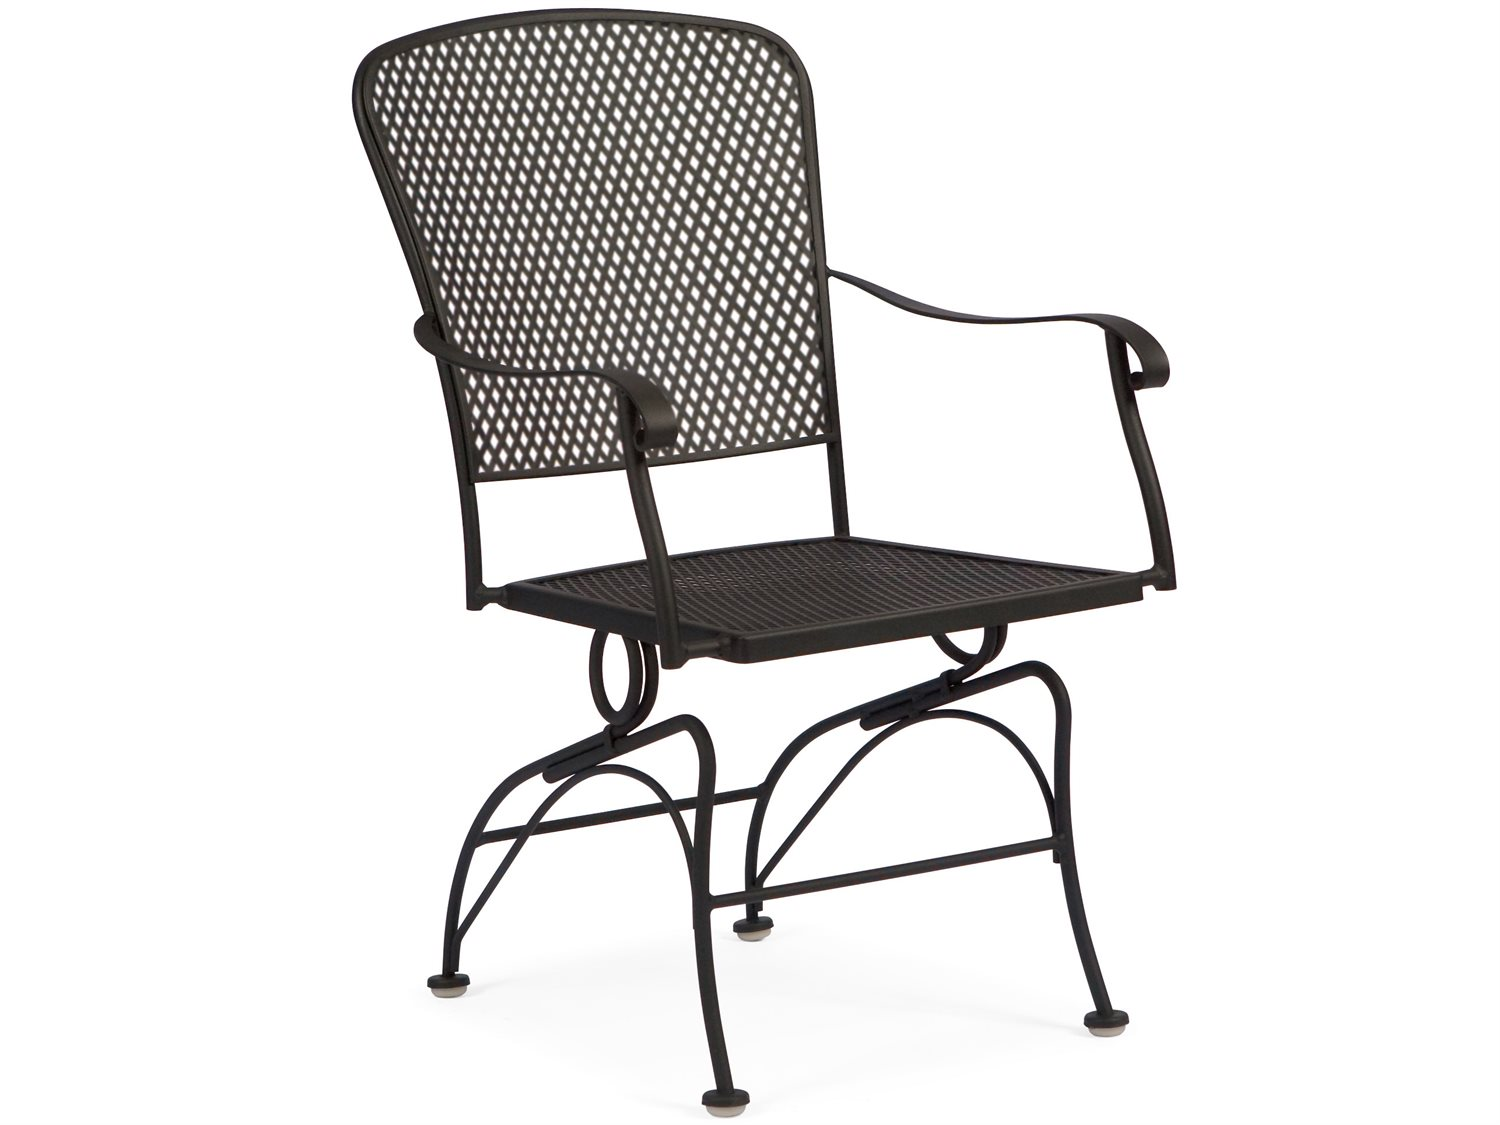 Woodard Fullerton Wrought Iron Coil Spring Dining Chair